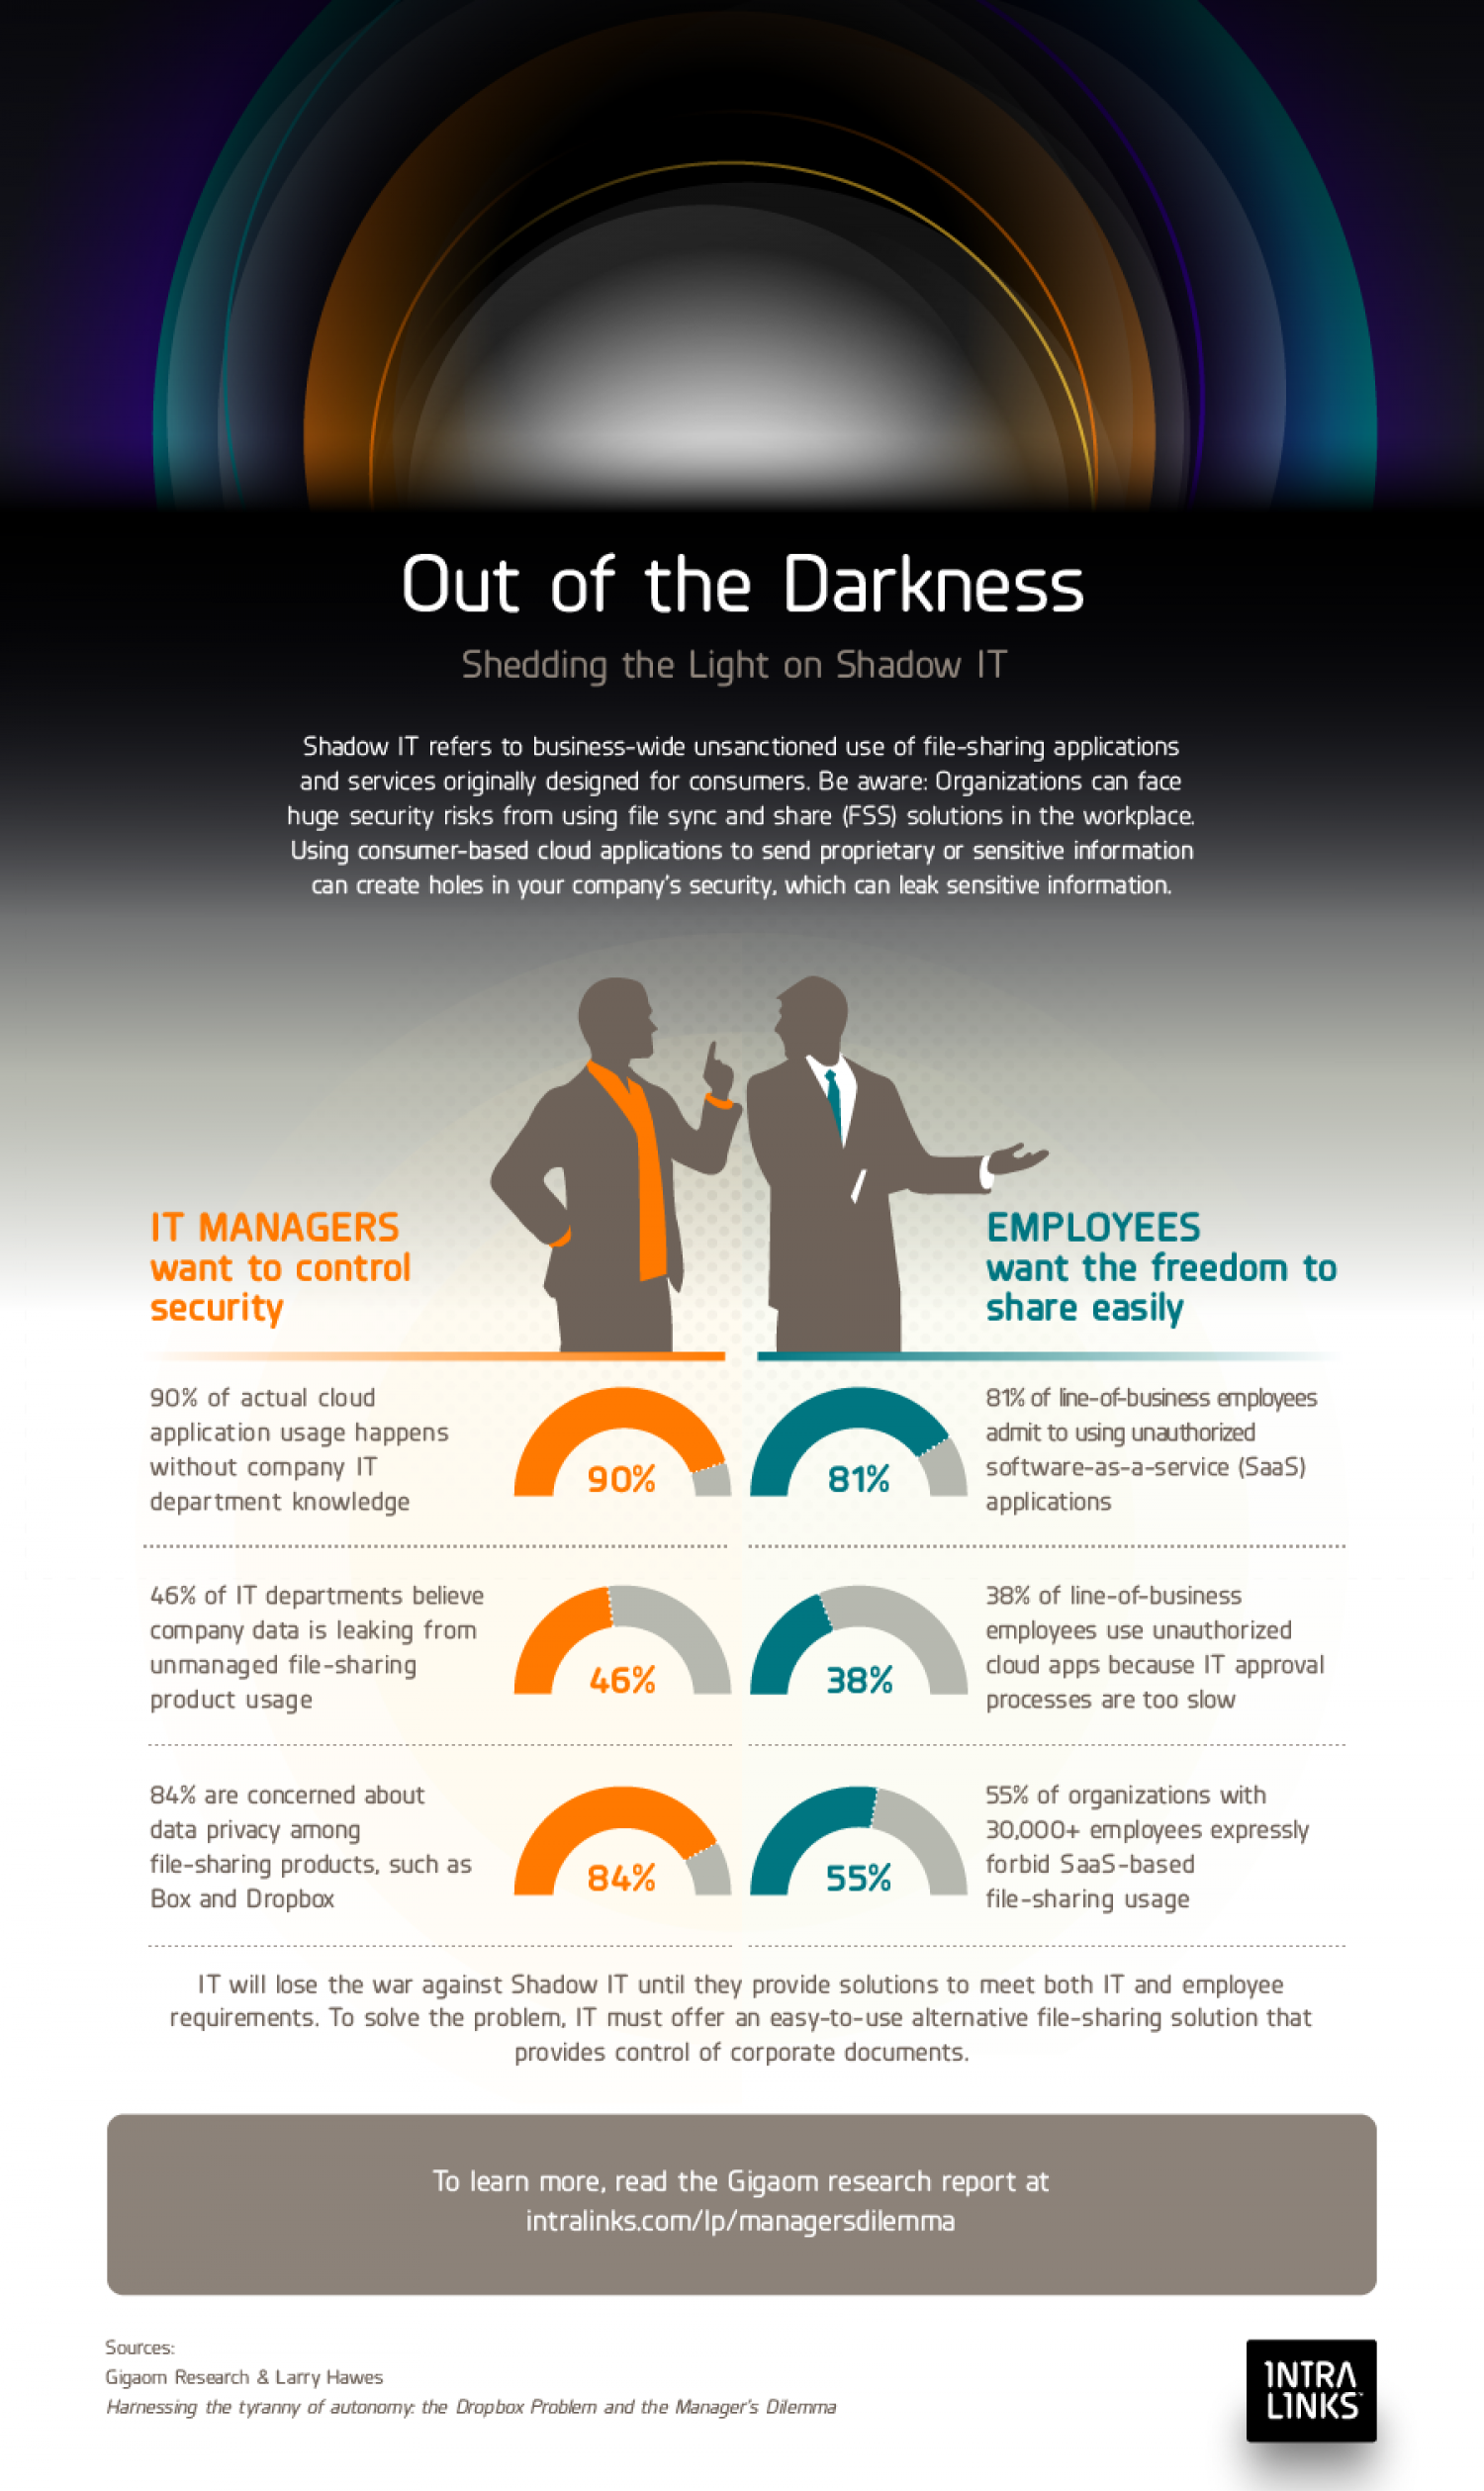 Out of the Darkness: Shedding the Light on Shadow IT Infographic